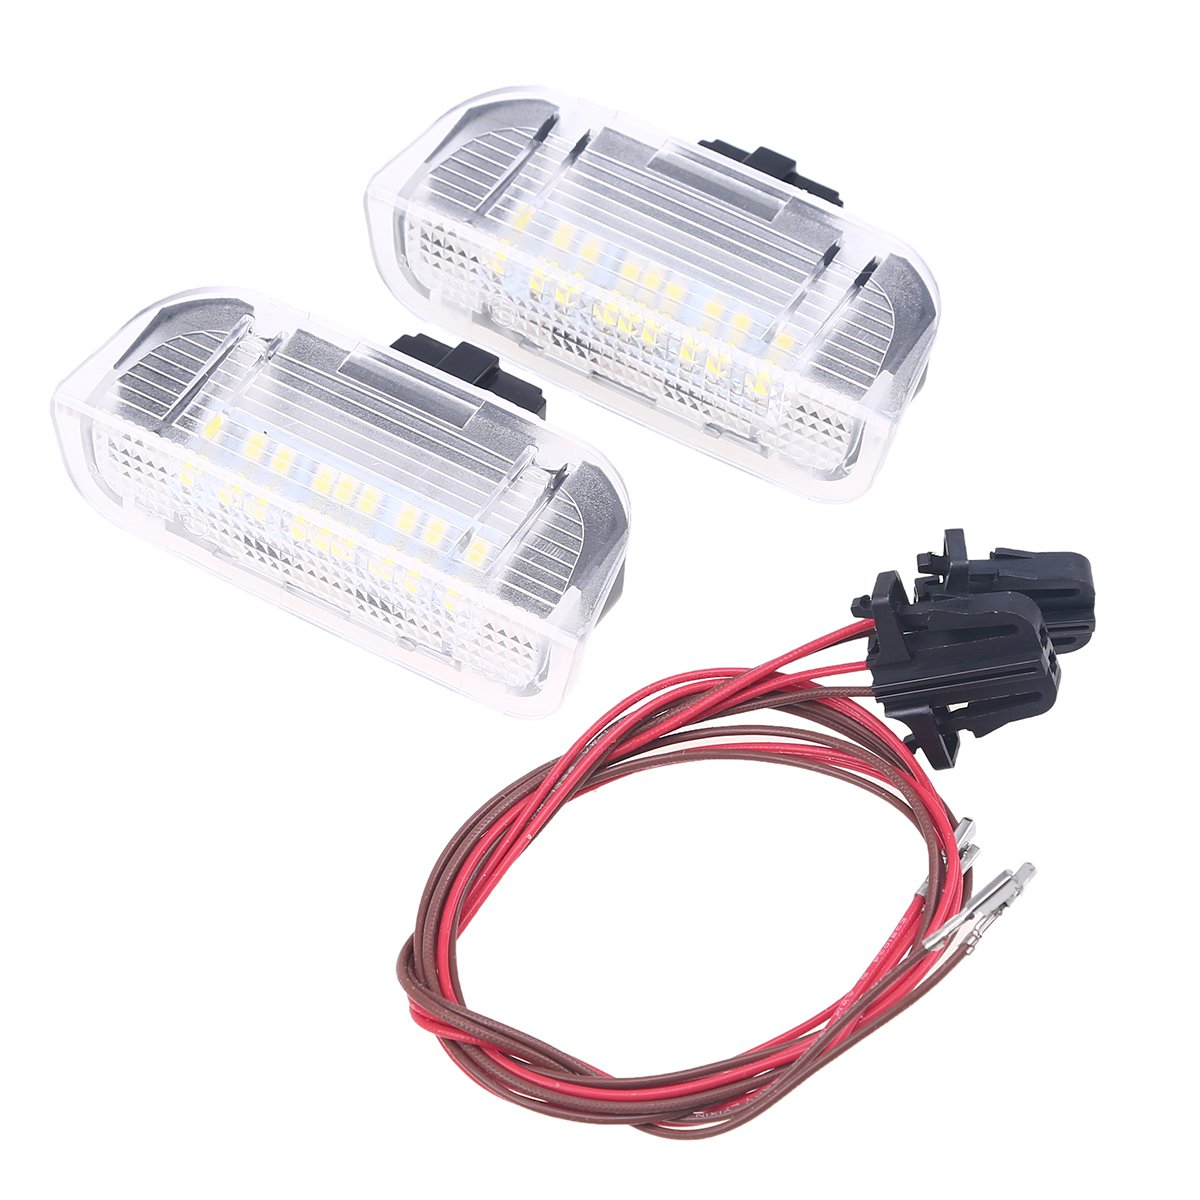 POSSBAY 2Pcs LED Car Auto Interior Door Courtesy Light Lamp for Volkswagen Golf 5 6